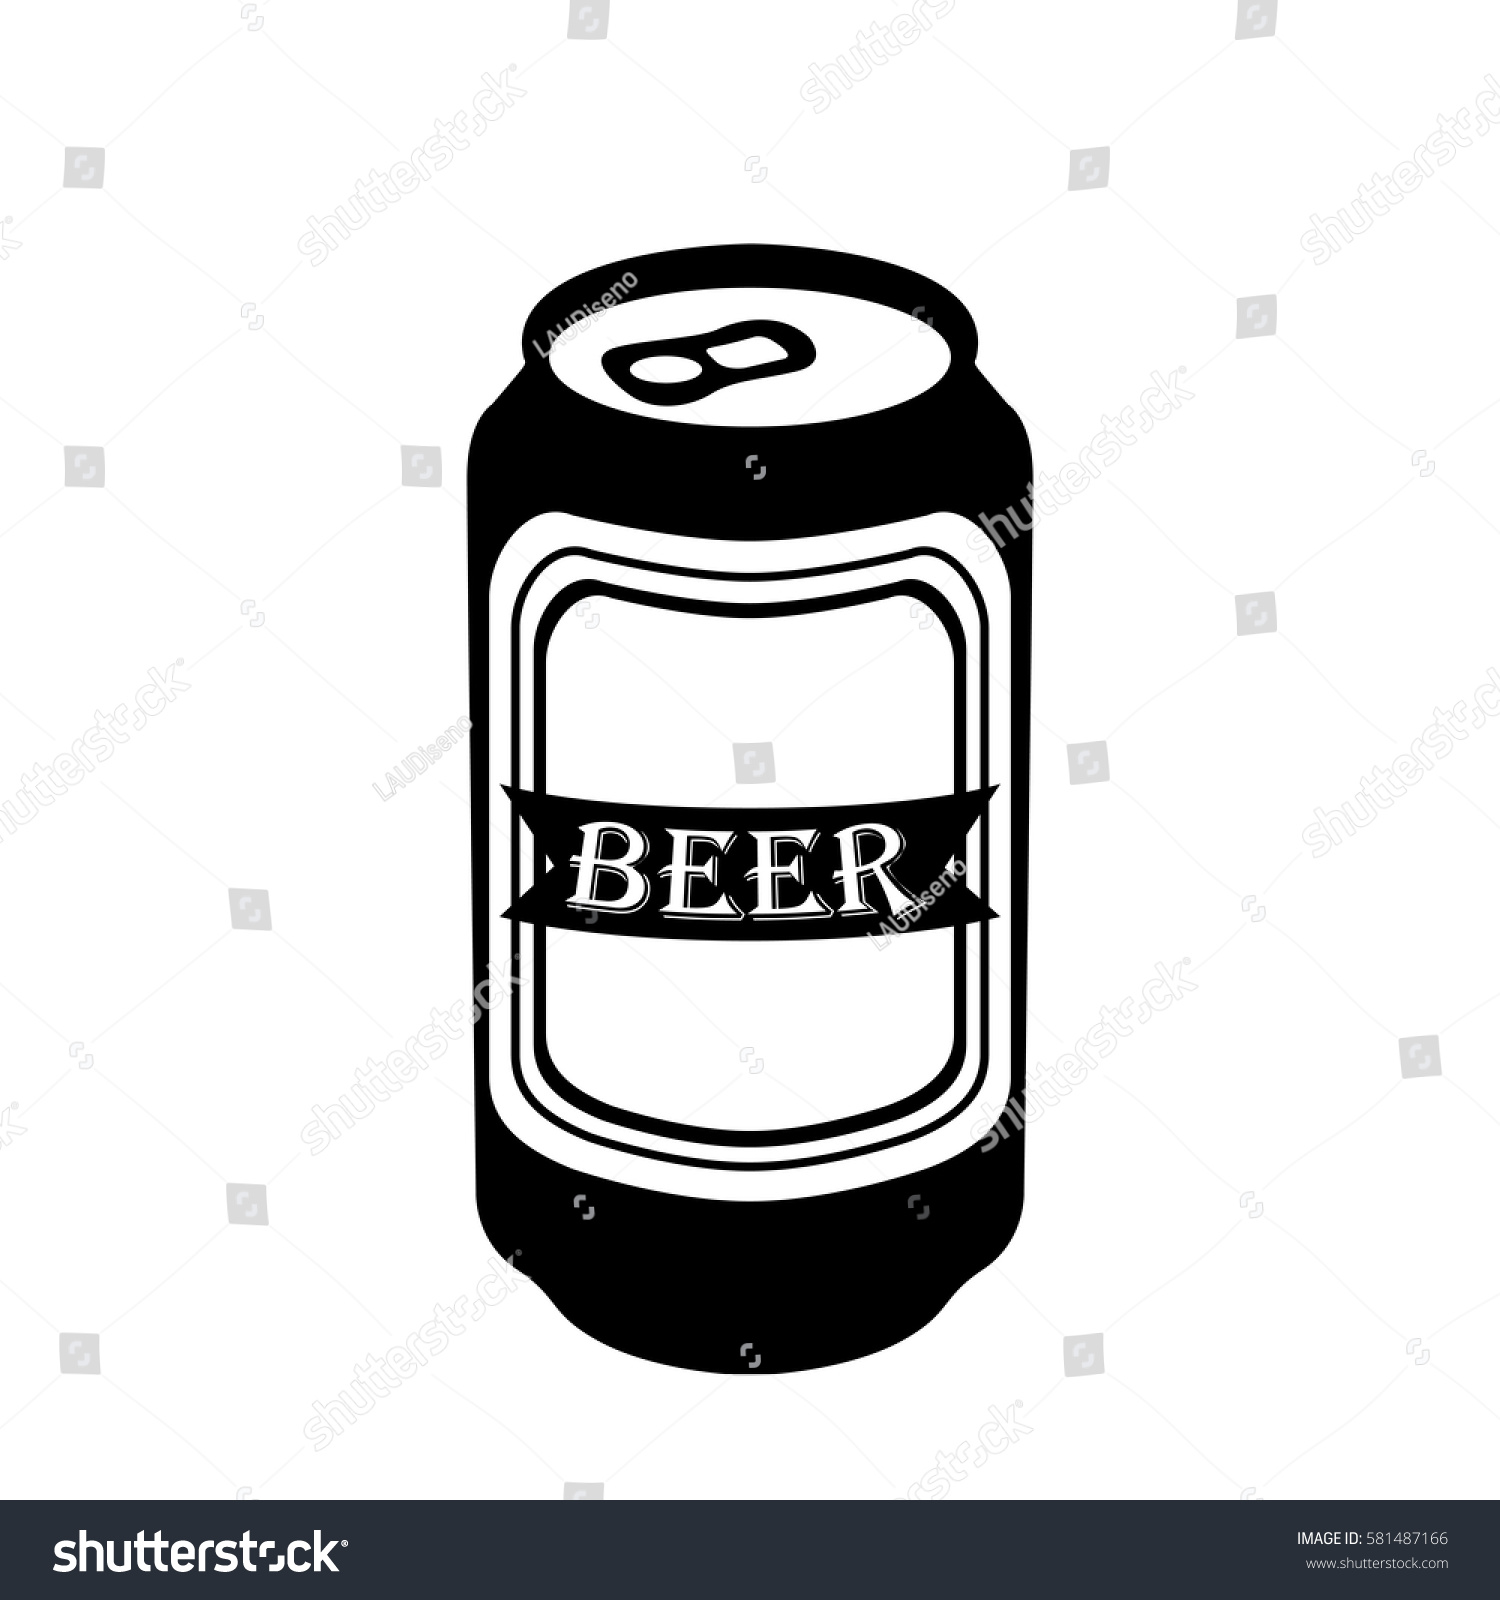 isolated silhouette beer can vector illustration stock vector rh shutterstock com crushed beer can vector crushed beer can vector